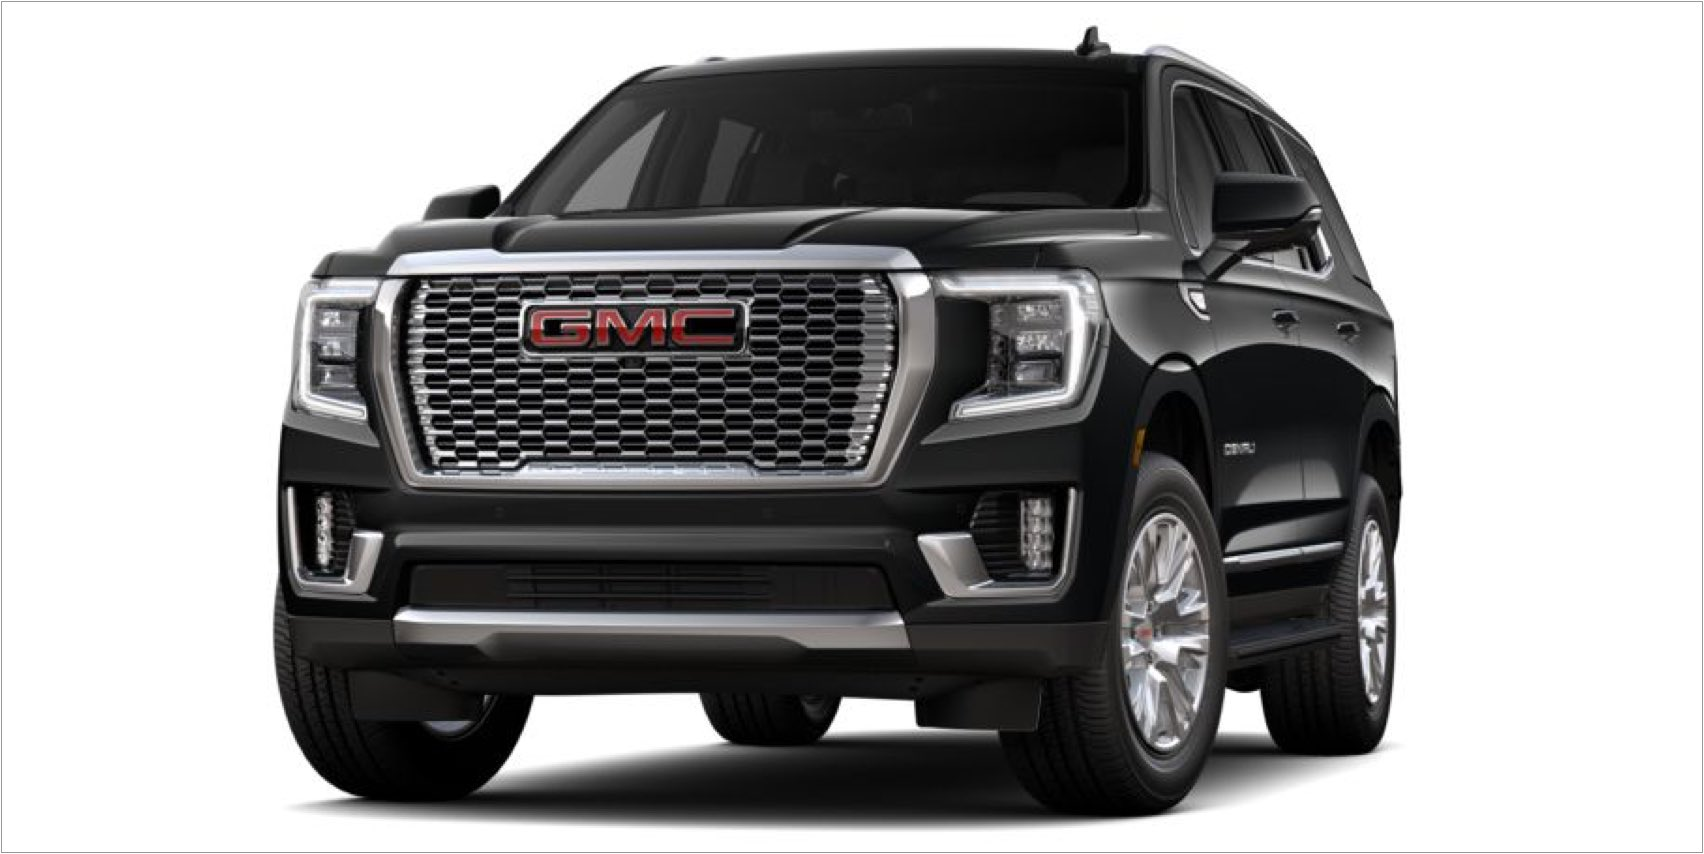 2021 GMC Yukon in Onyx Black